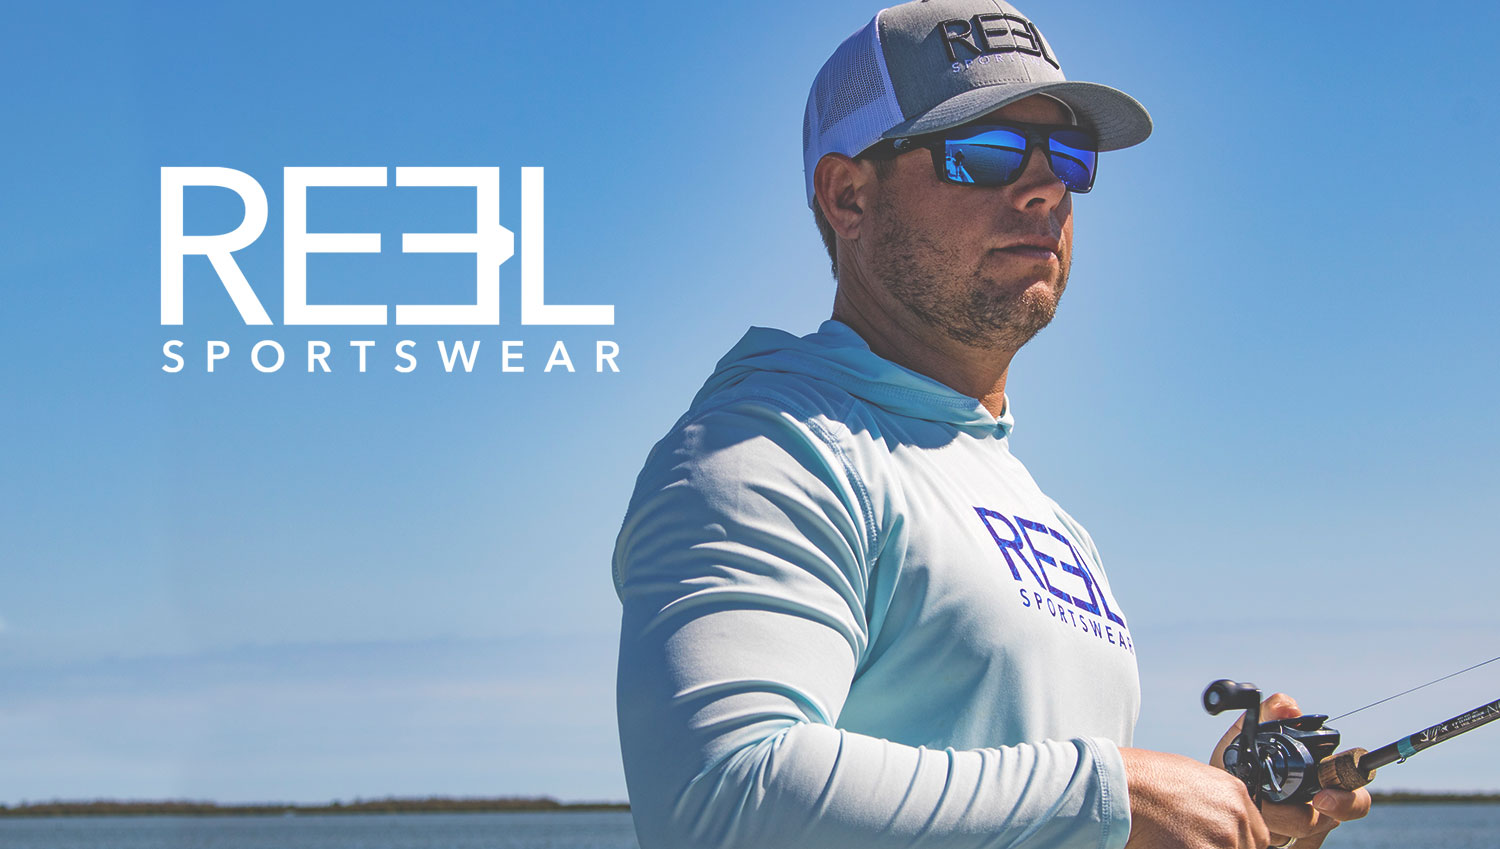 Reel Sportswear™ Apparel